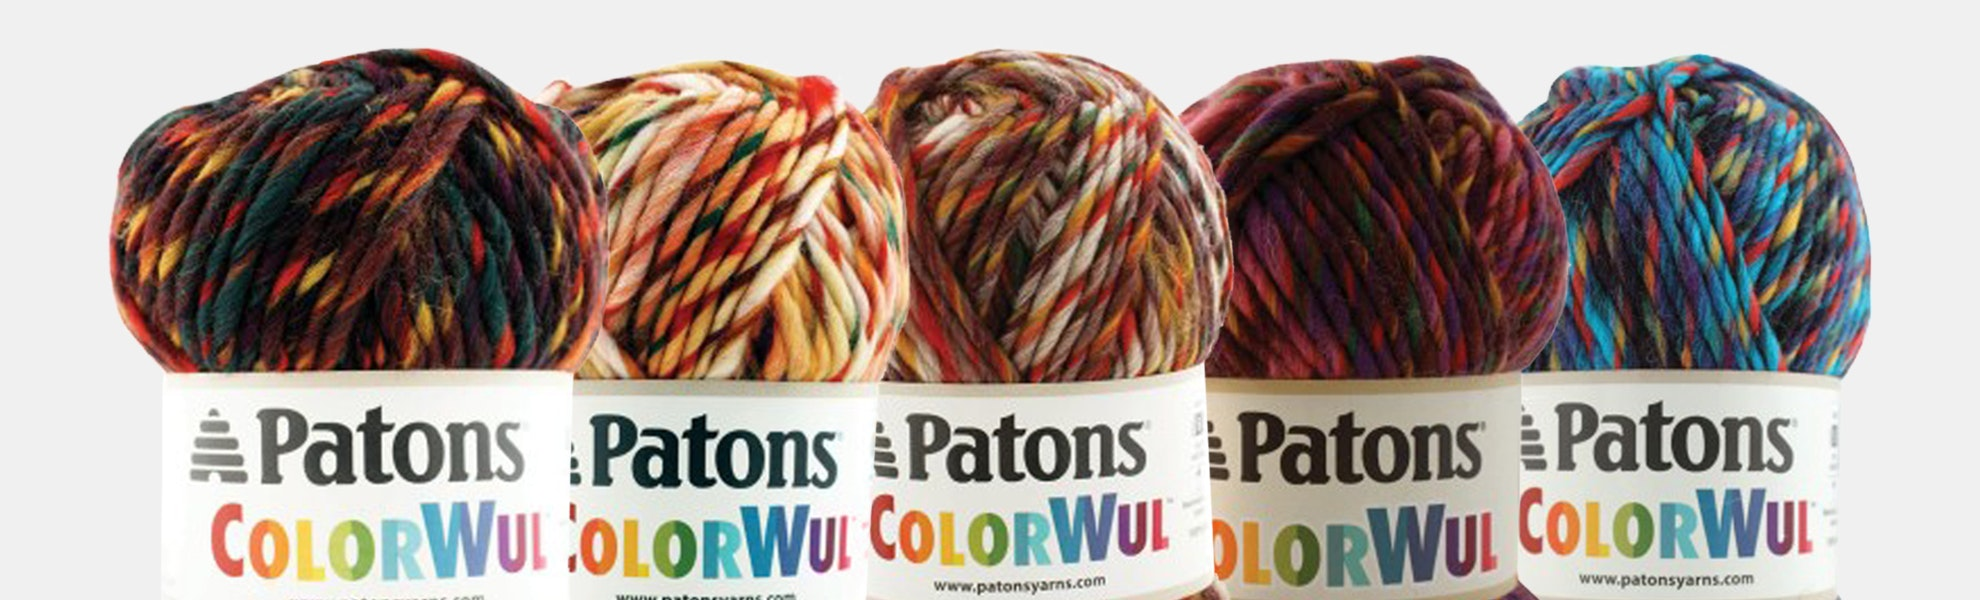 ColorWul Yarn by Patons